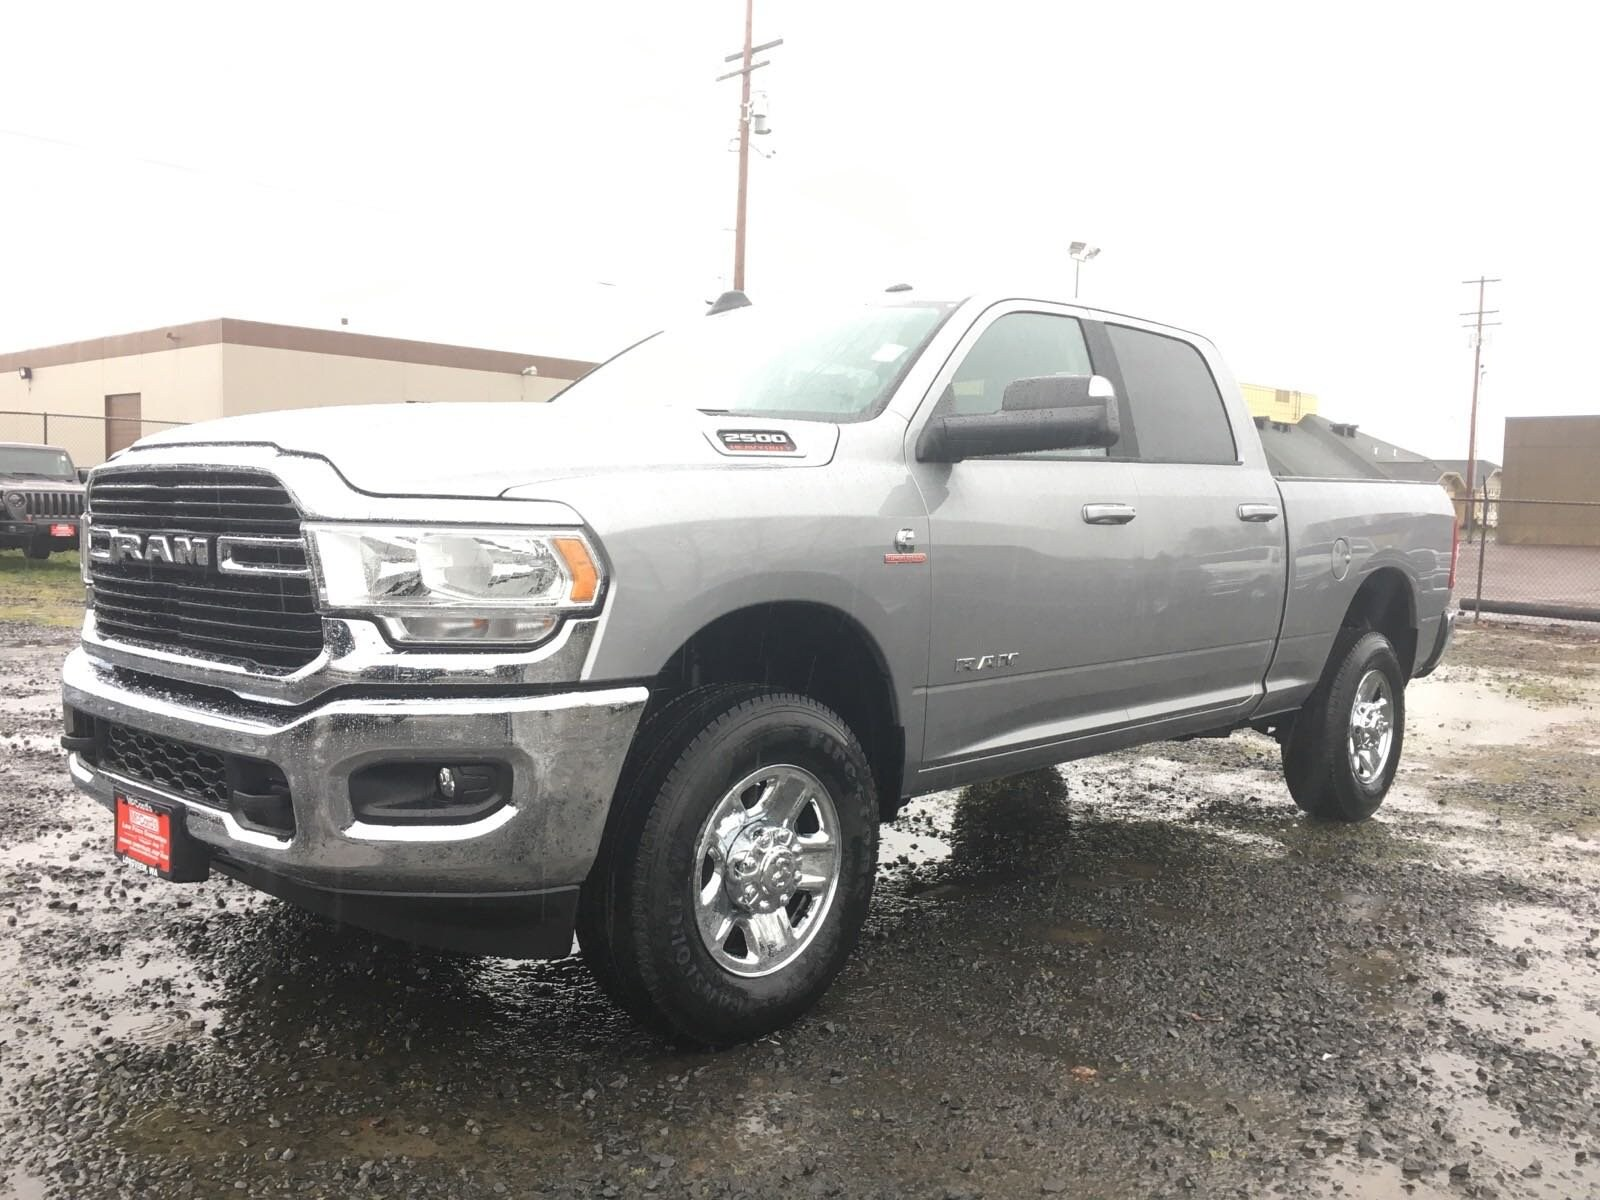 2020 Ram 2500 Crew Cab 4x4, Pickup #R1961 - photo 1